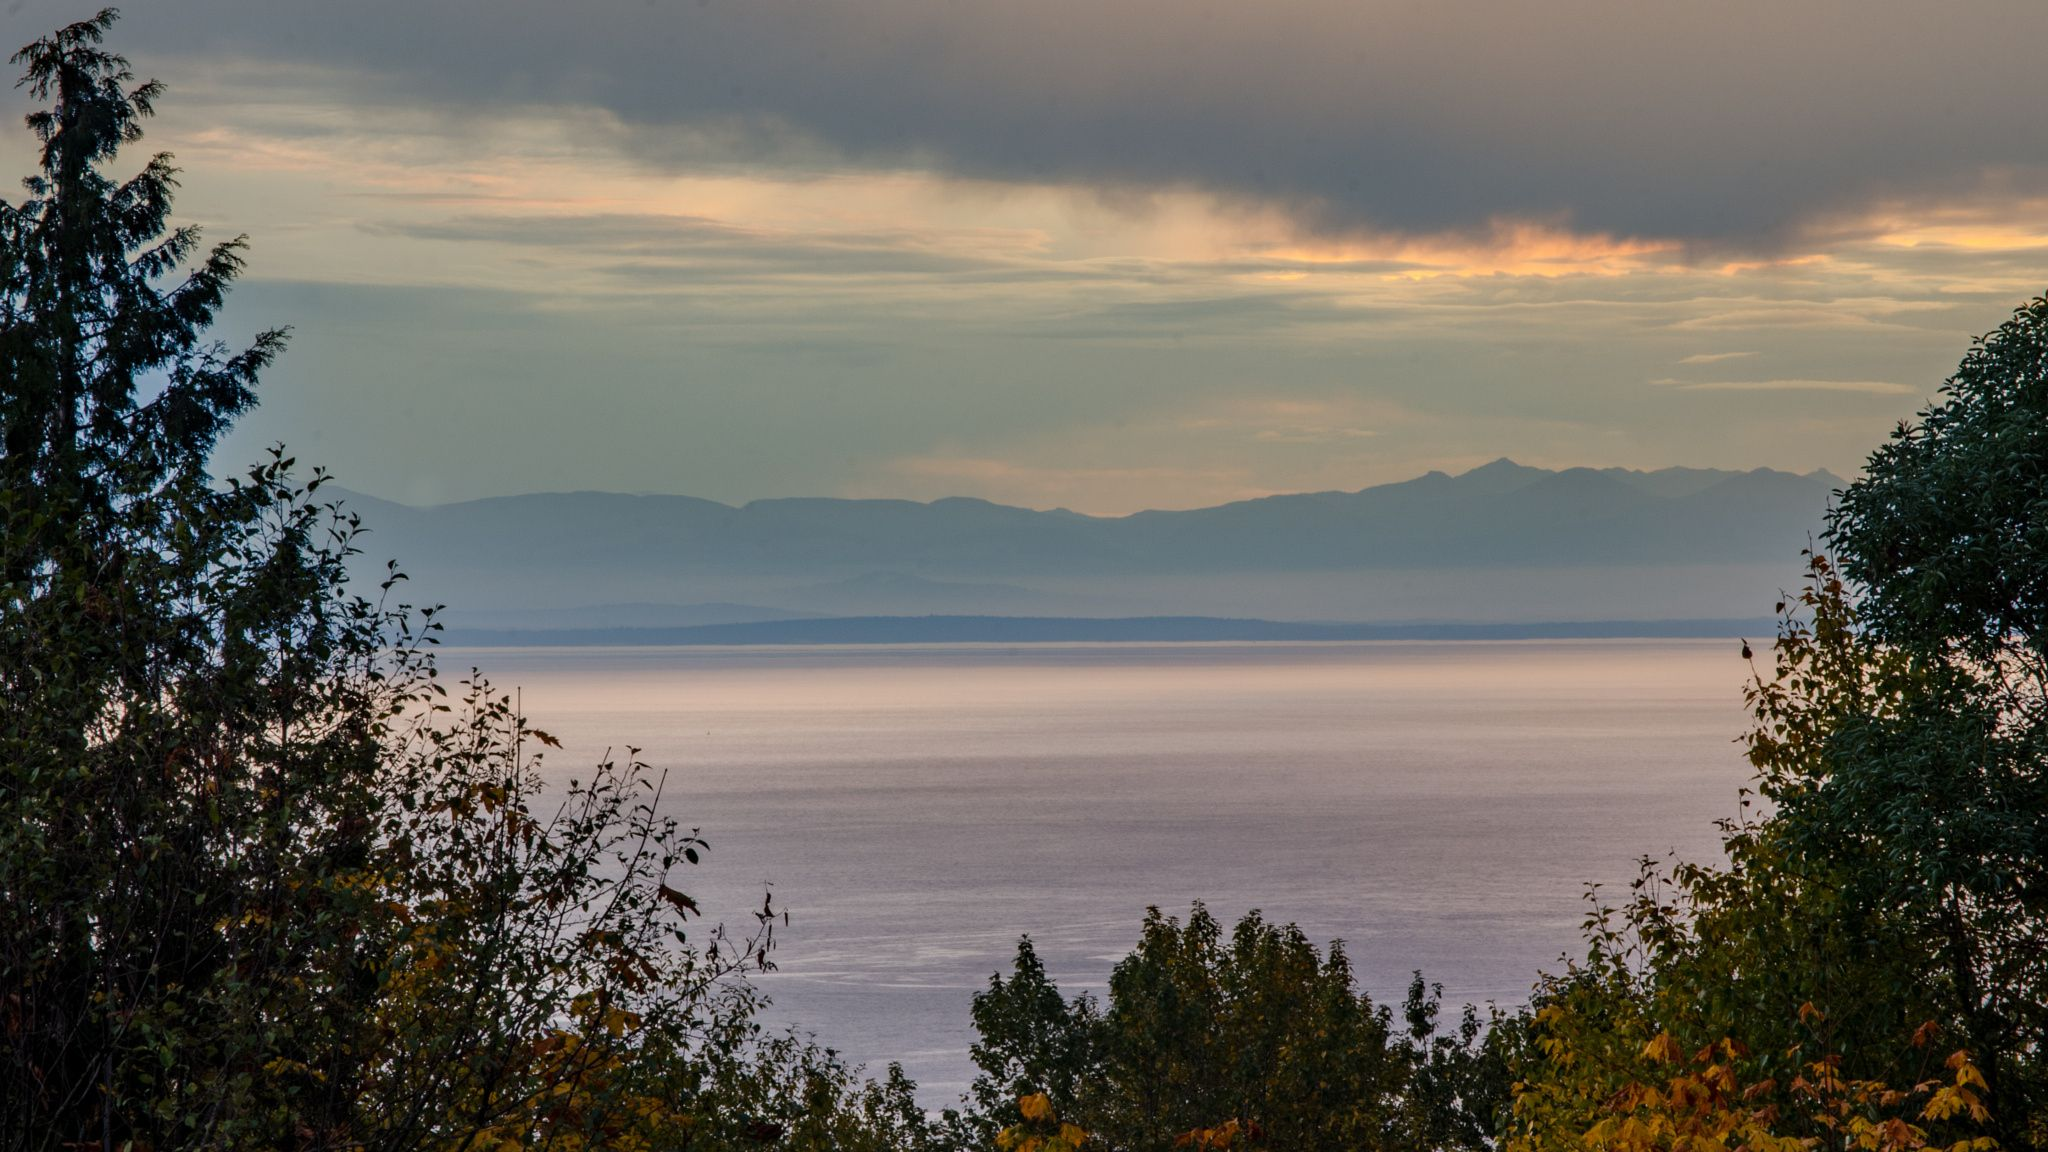 @nomadtoday The view of the Georgia Strait from West Vancouver, Canada.